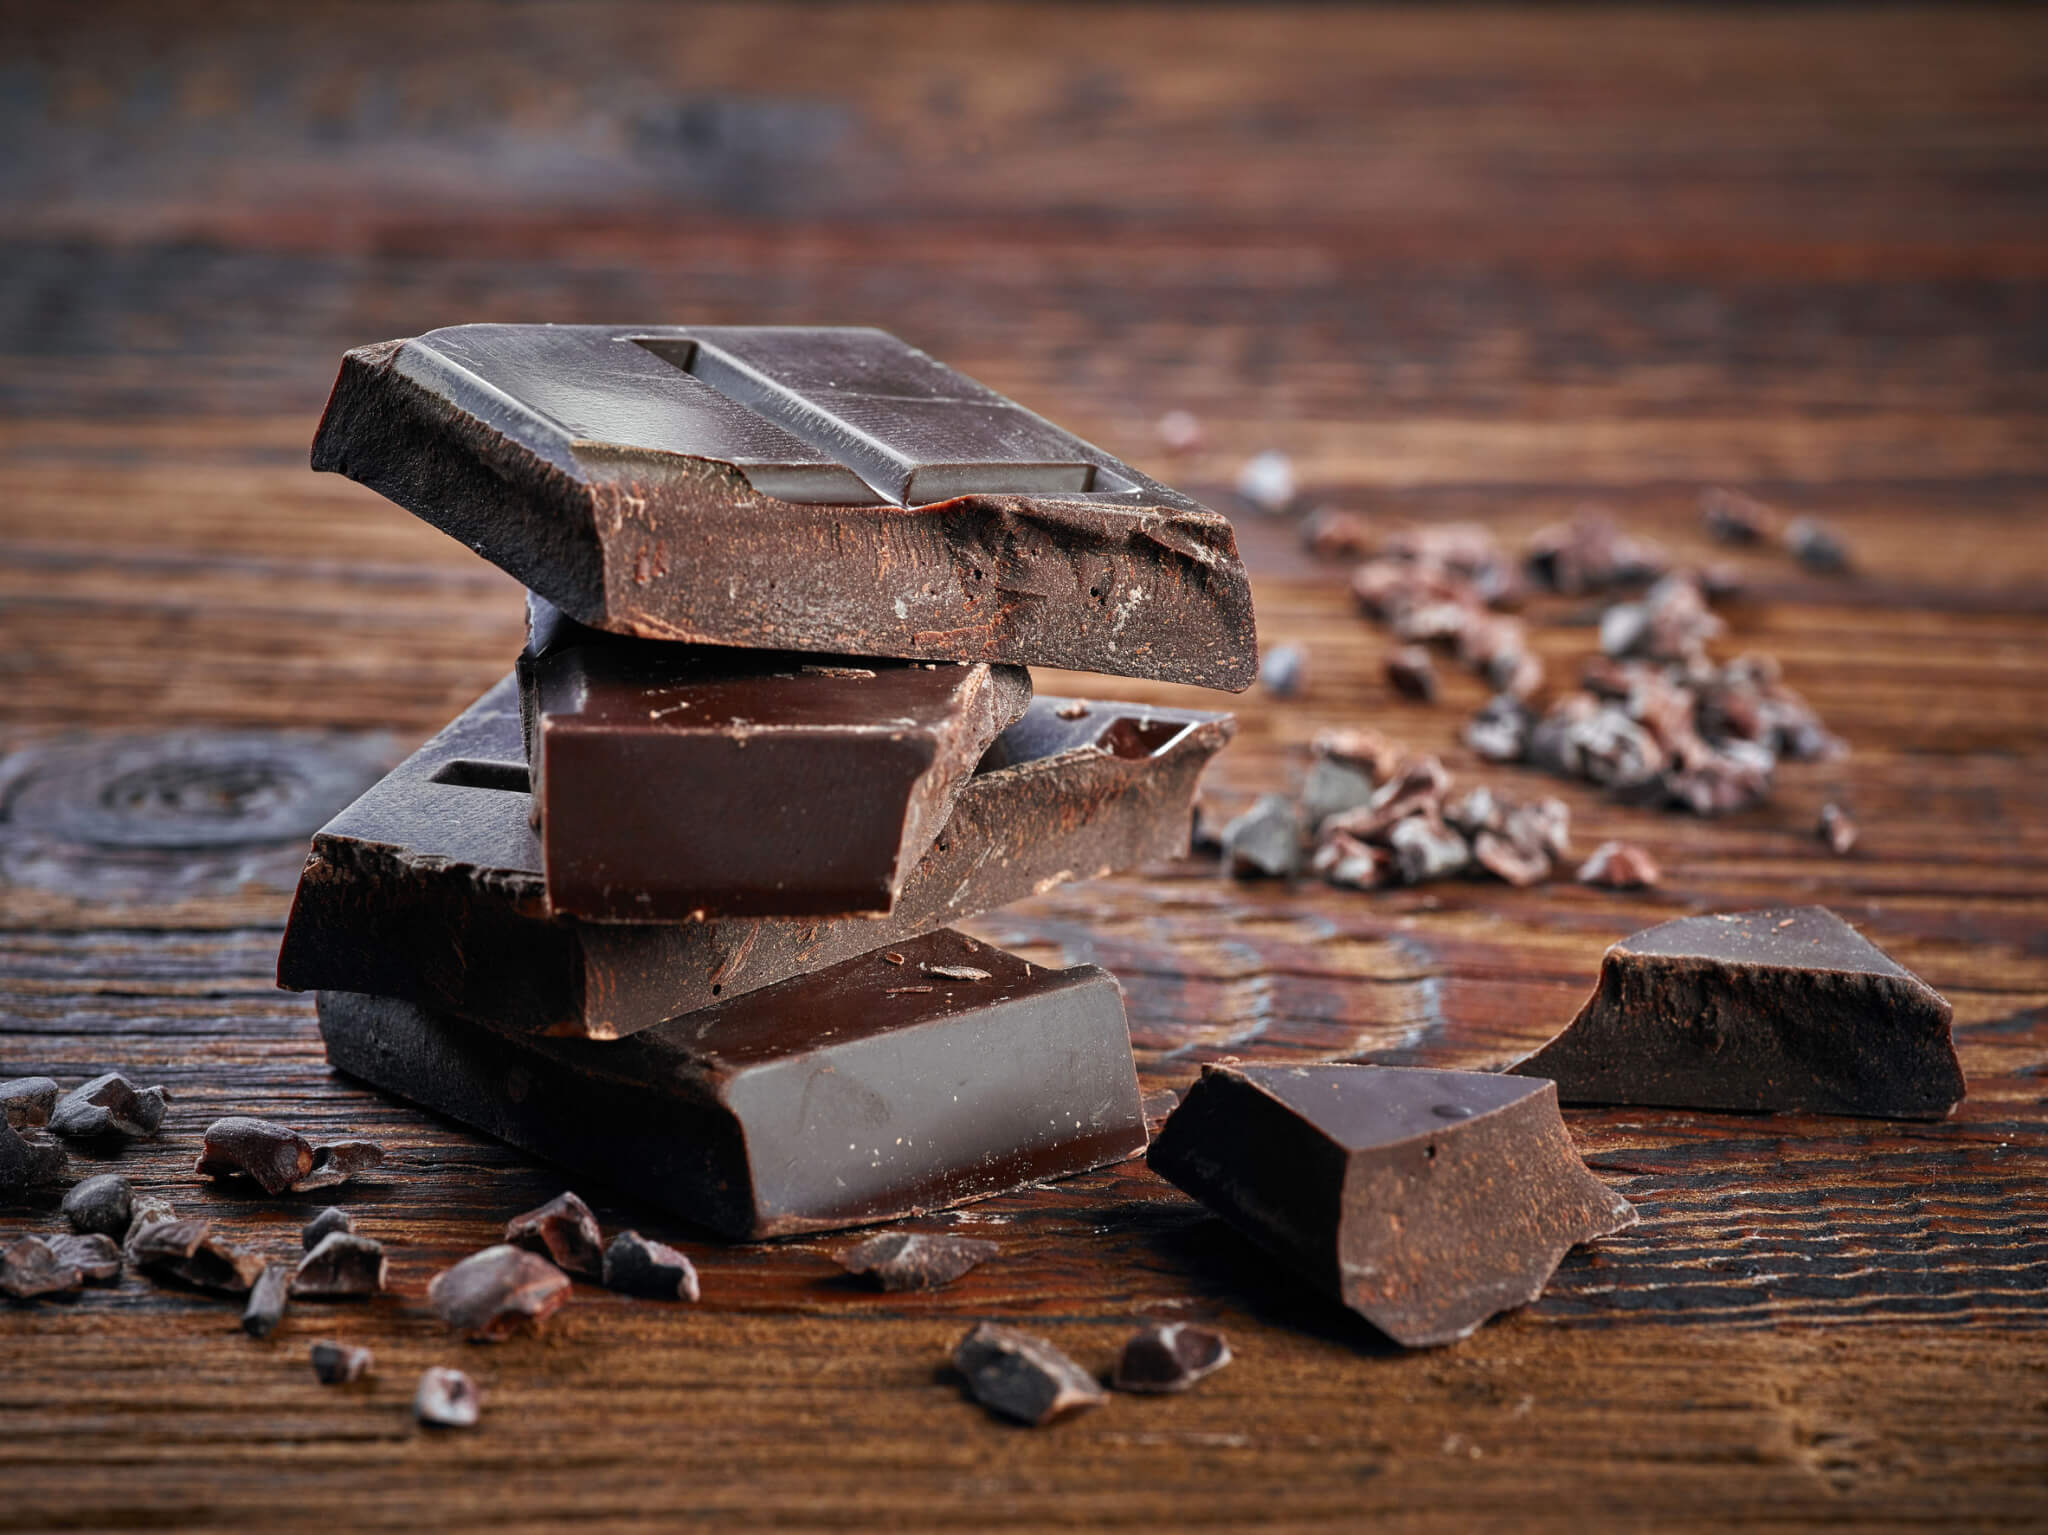 [NEWS] Studies Show Dark Chocolate Could Improve Brain Function